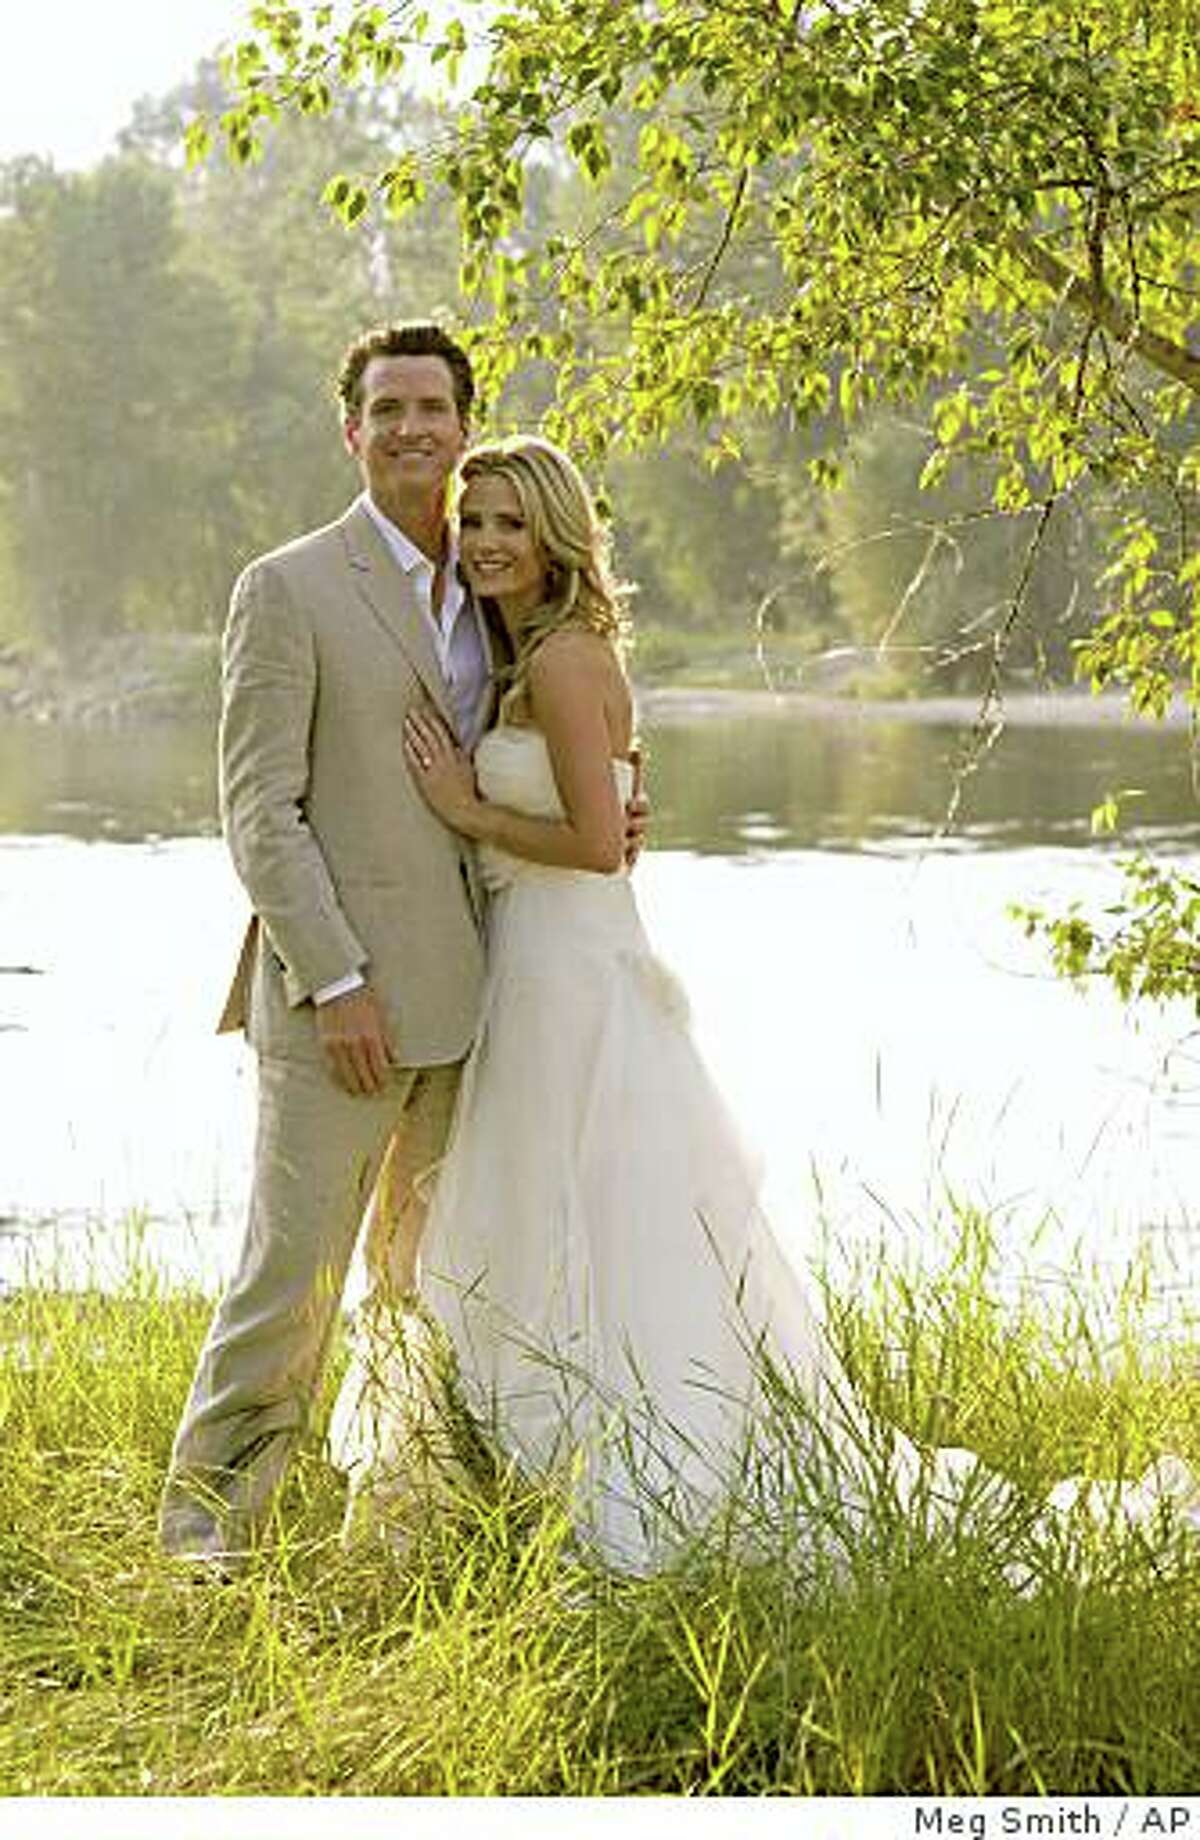 San Francisco Mayor Gavin Newsom poses with his new wife Jennifer Siebel on the banks of the Bitterroot river Saturday July 26, 2008 shortly after being married on her parents' ranch . Newsom took a break from his busy job and gubernatorial ambitions to marry actress Jennifer Siebel on Saturday at Siebel's parents' Montana ranch. It is the 34-year-old Siebel's first marriage and the second for Newsom, who divorced legal analyst Kimberly Guilfoyle in March 2006. (AP Photo/Meg Smith)